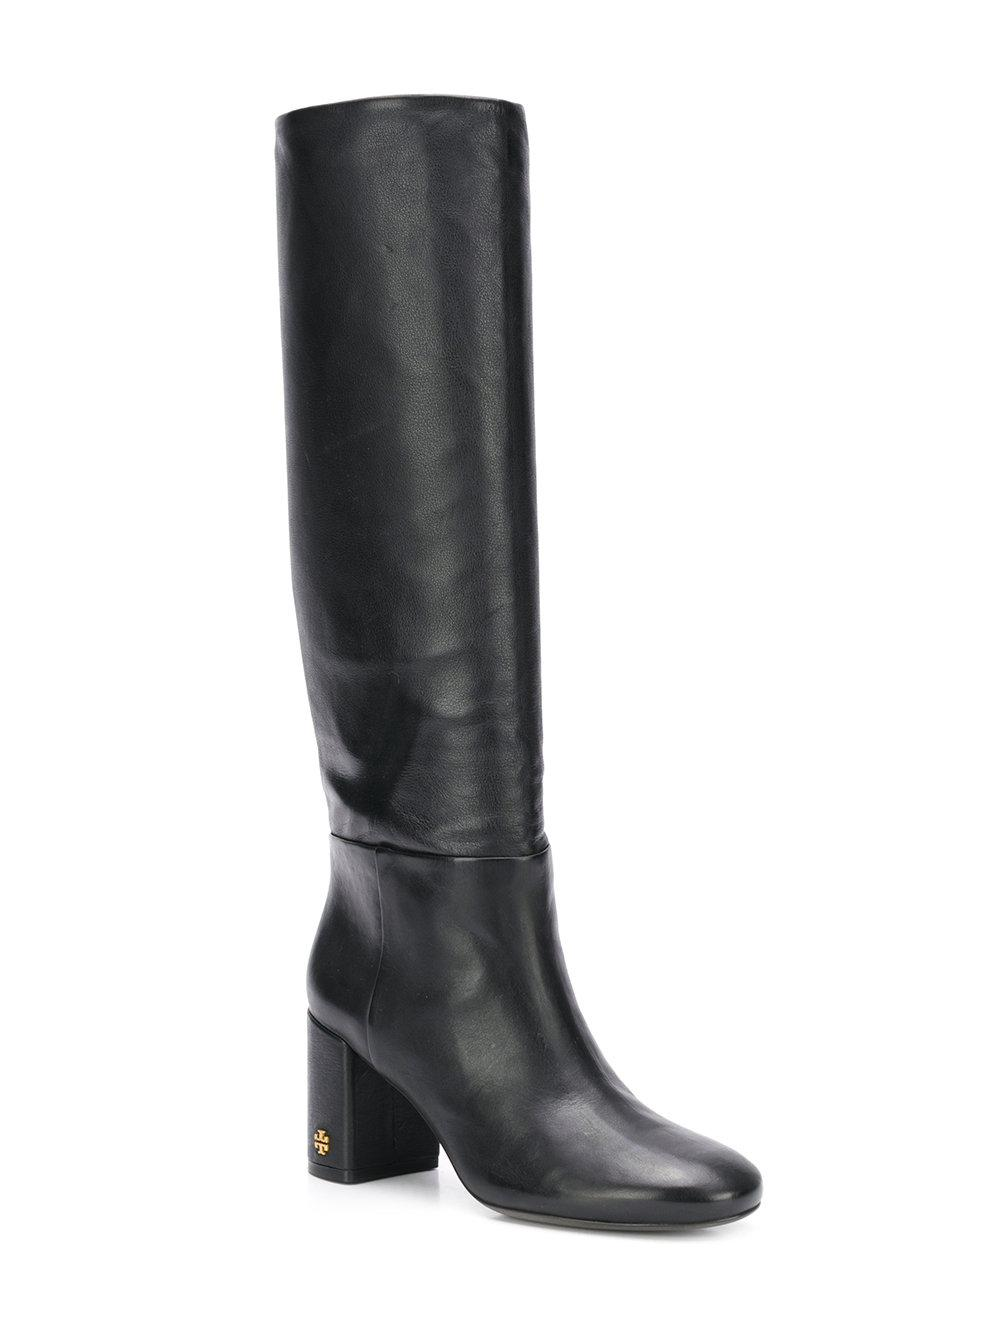 919aa89c33f2 Lyst - Tory Burch Brooke Slouchy Knee-high Boots in Black - Save 60%